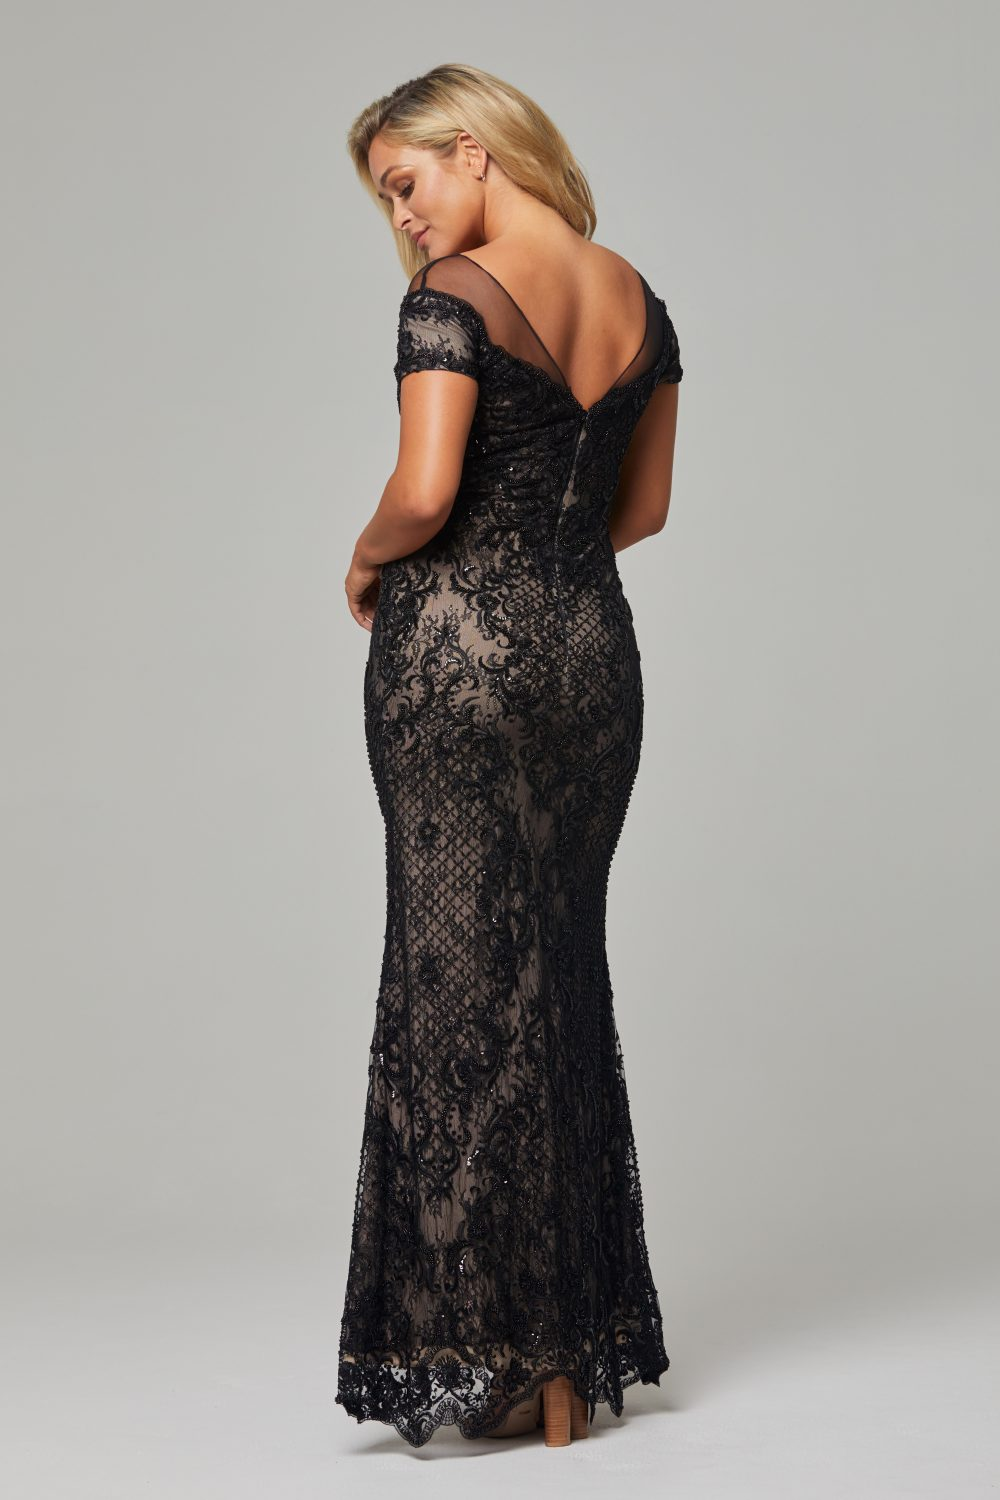 TC228-Black nude-Evie dress-back